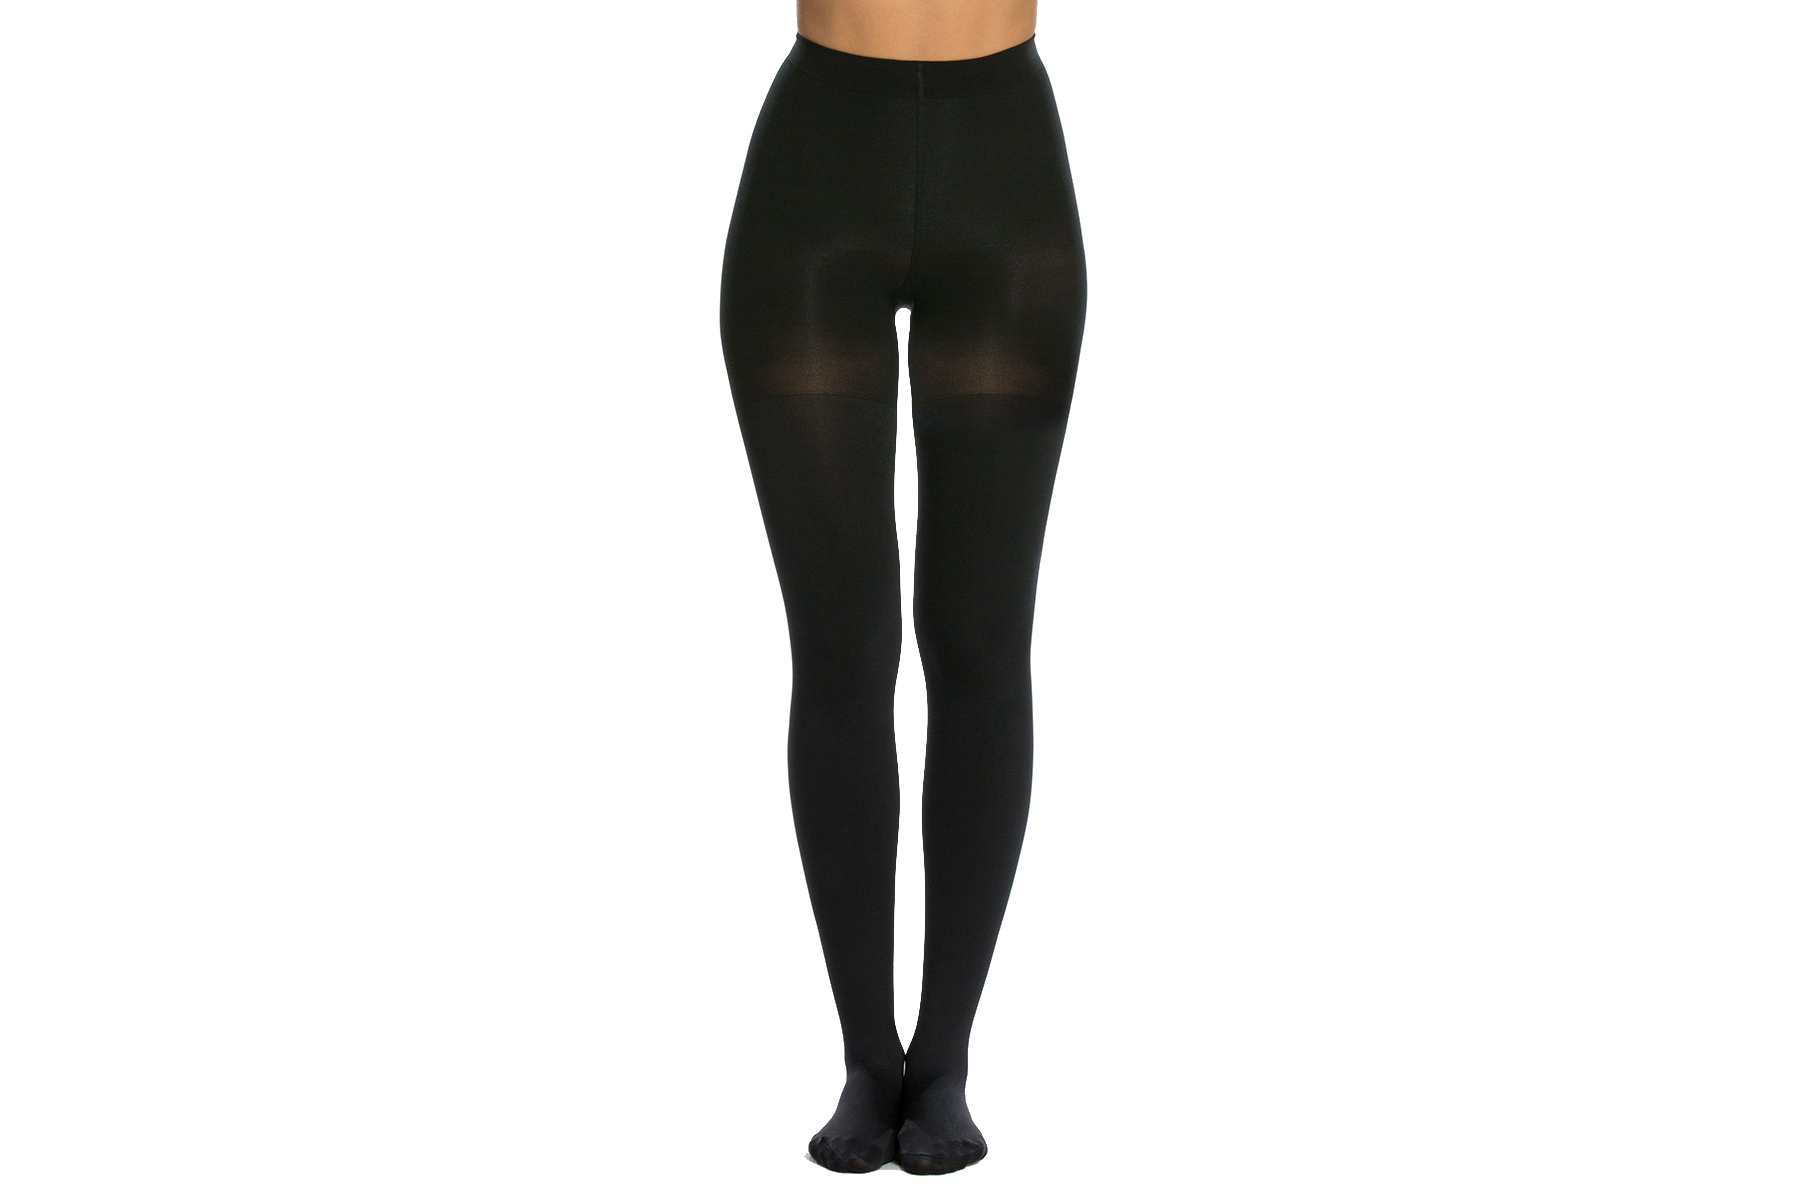 Spanx Luxe Leg Blackout Mid-Thigh Shaping Tights